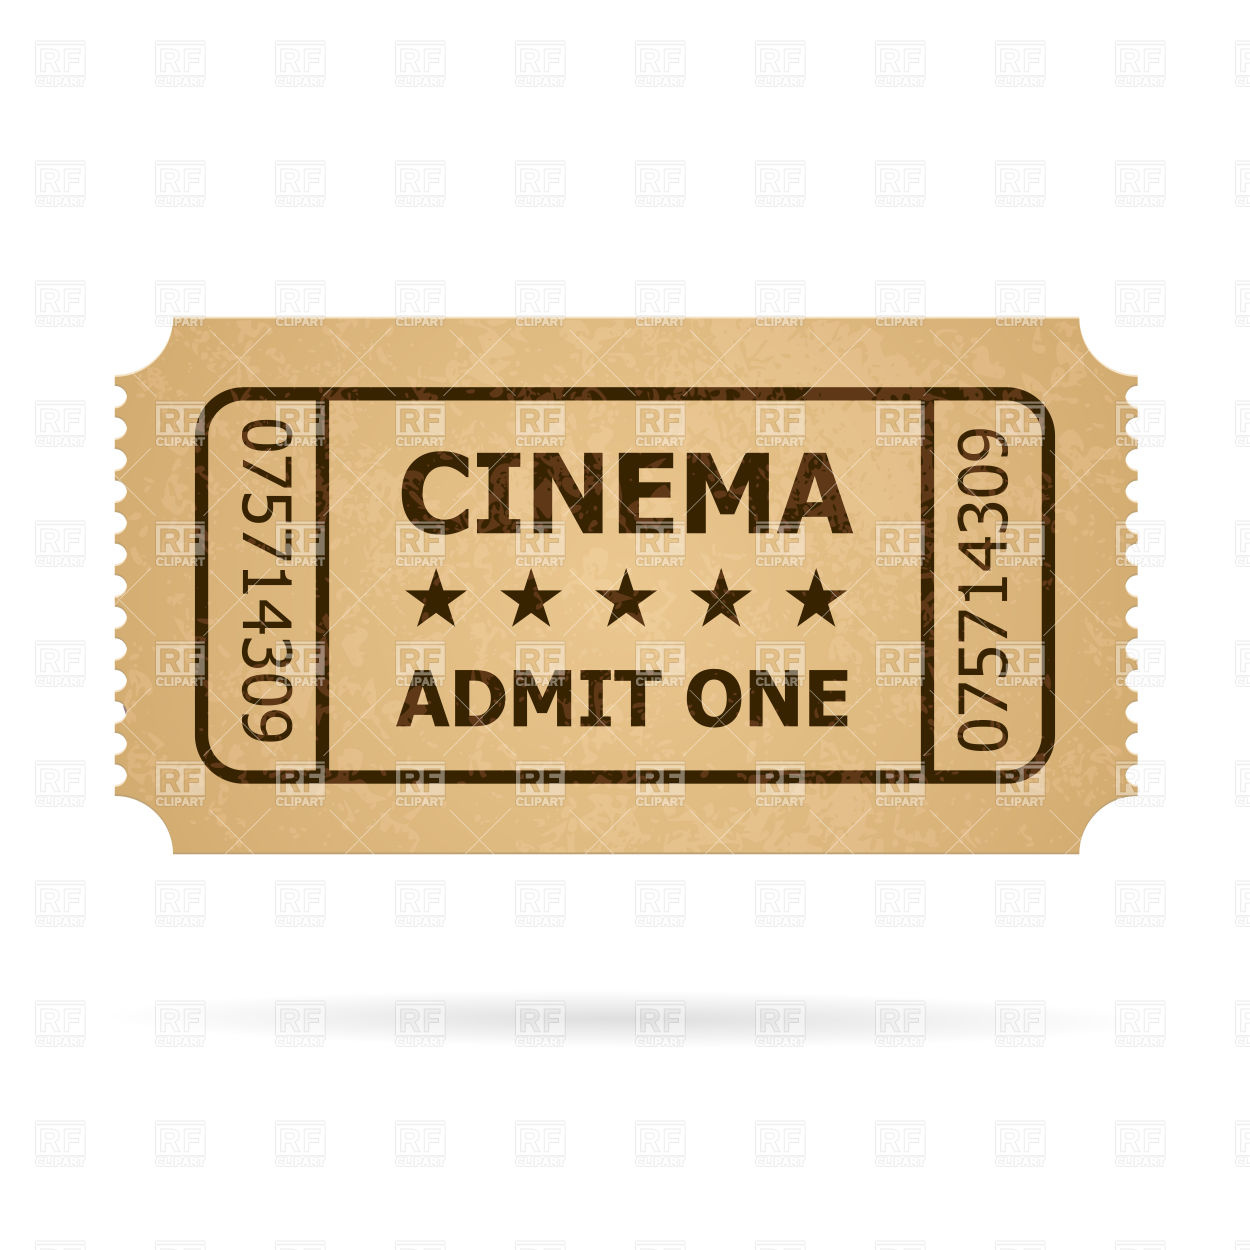 doc word ticket template event ticket avery ticket templates 4 year old birthday raffle ticket u2026 word ticket template